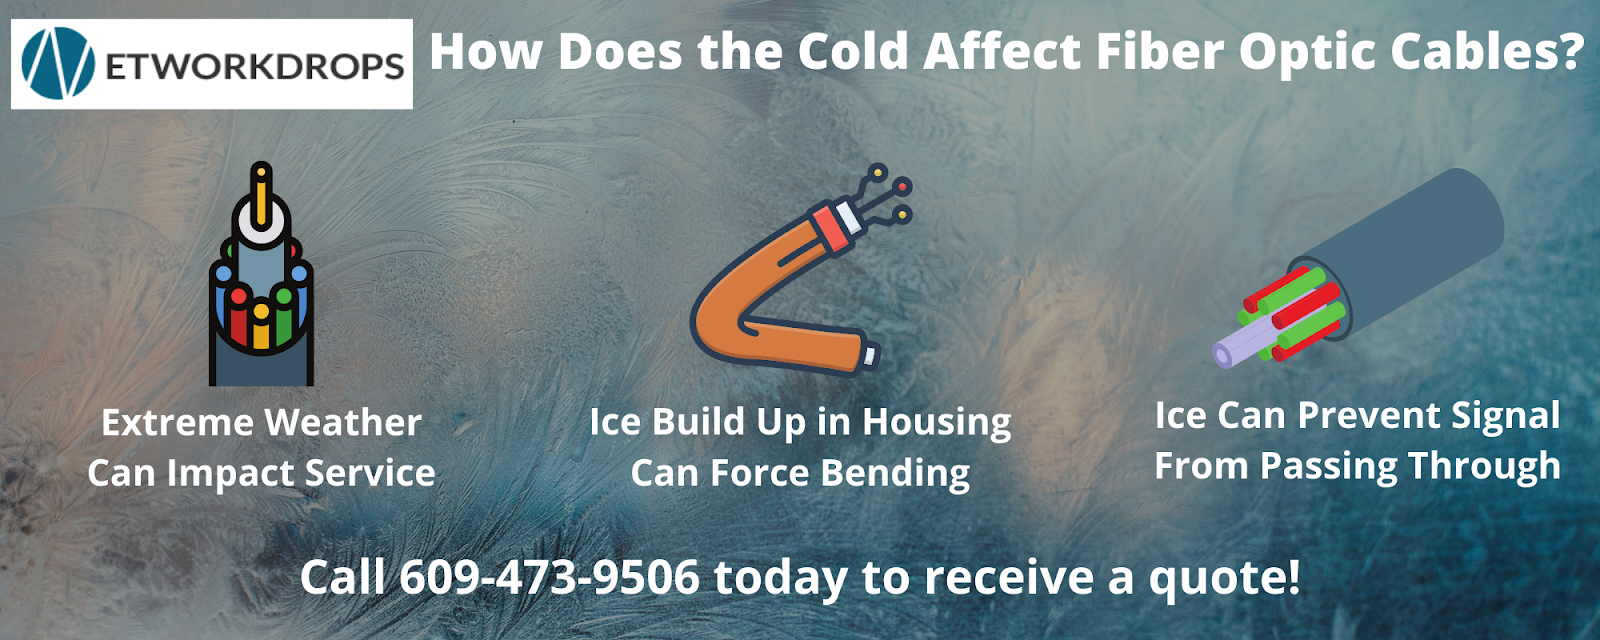 Infographic detailing how cold weather can affect fiber optic cables